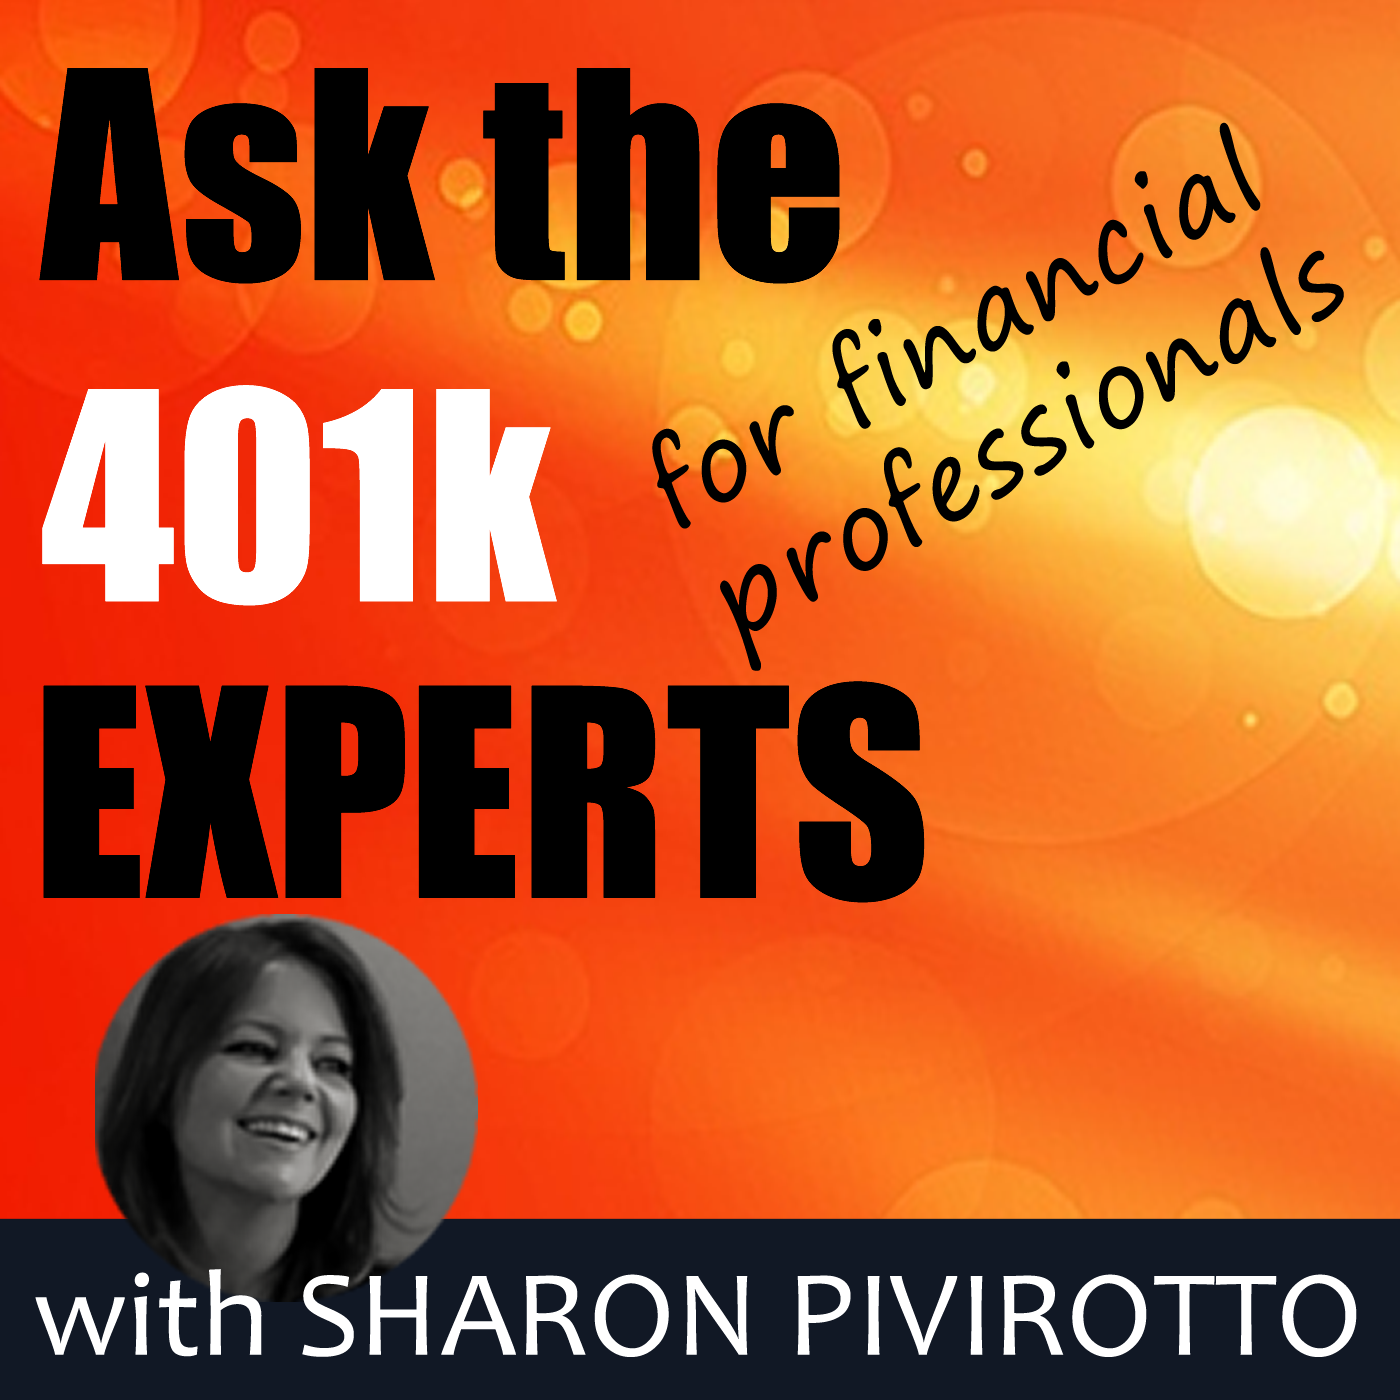 Ask the 401k Experts - A Podcast to teach financial advisors how to grow and manage a successful 401k business